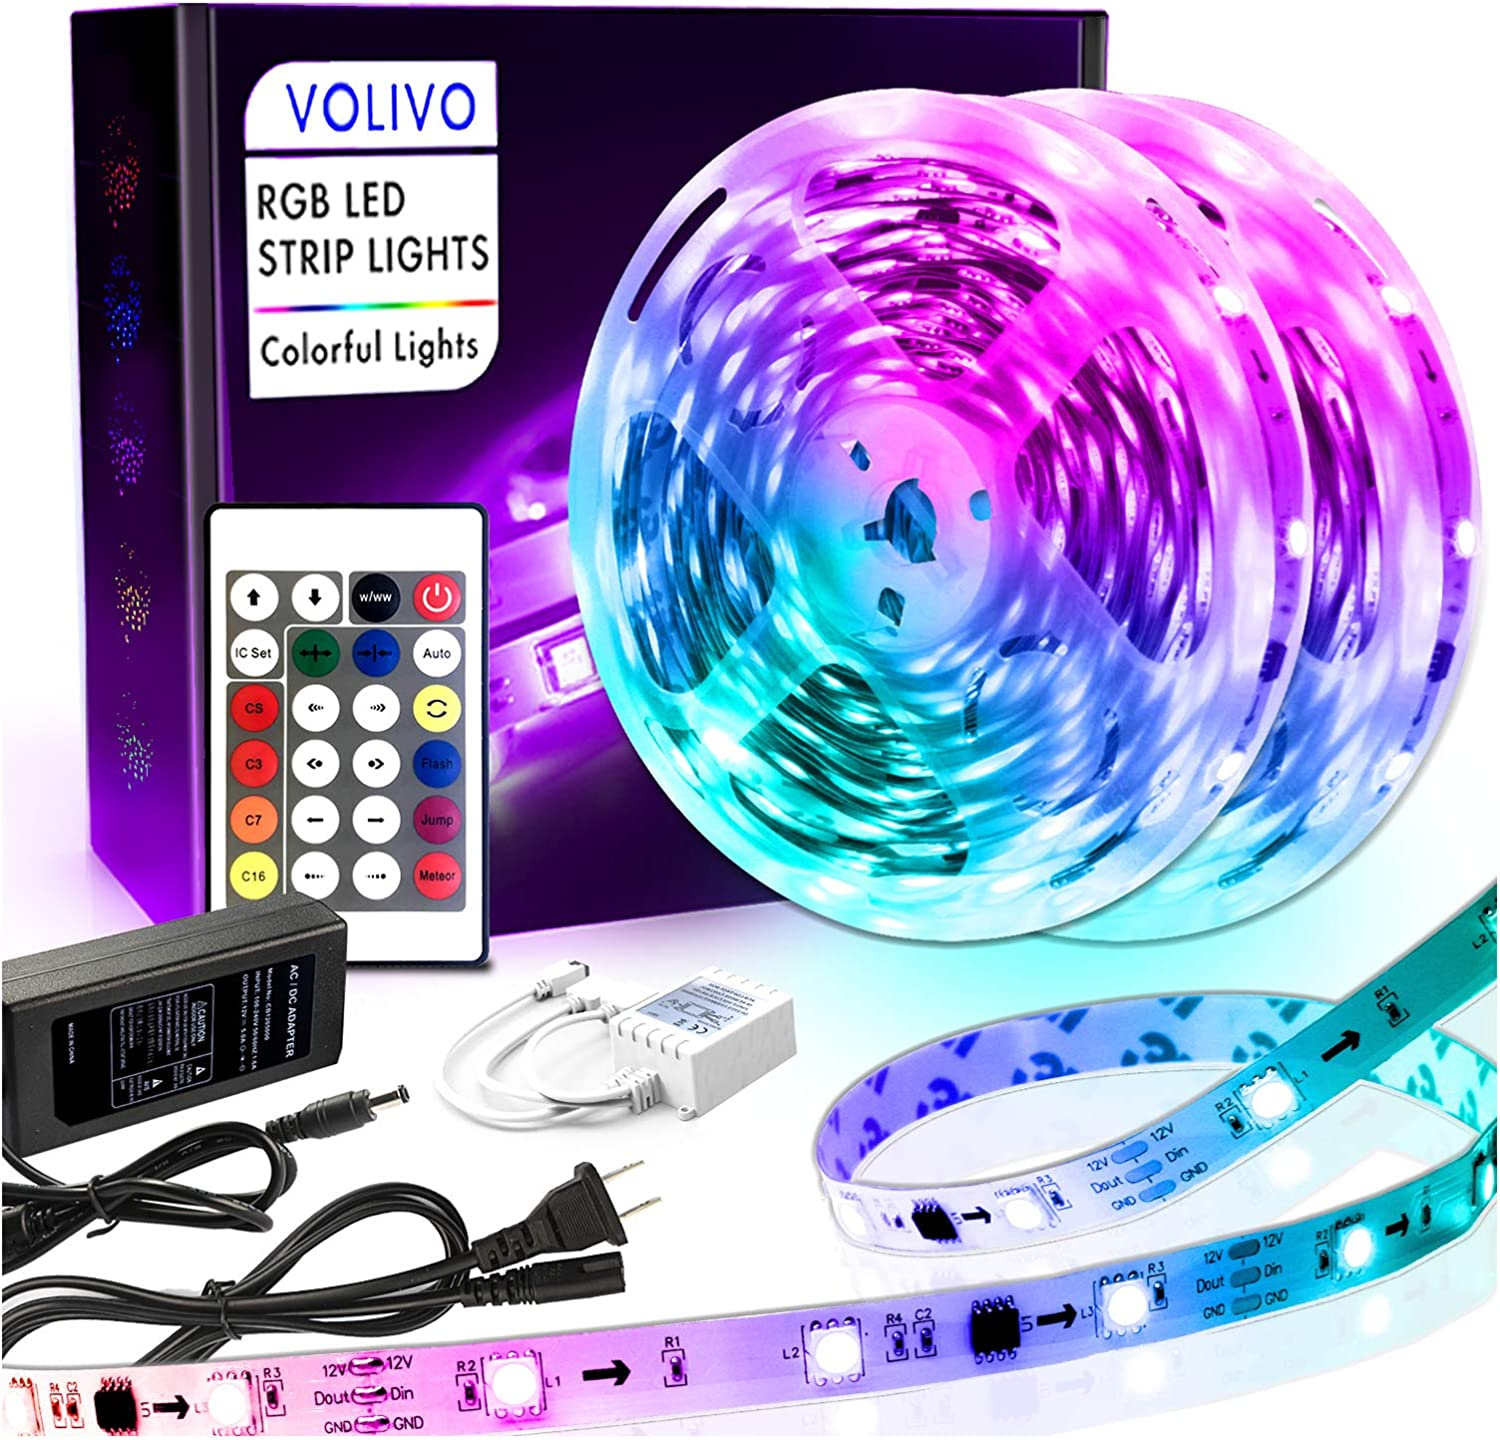 Volivo Rainbowcolor Led Strip Lights 32.8ft, 2 Rolls of 16.4ft 5050 Color Changing LED Lights for Bedroom, Room, Kitchen, Home, Party with 24 Key IR Remote…